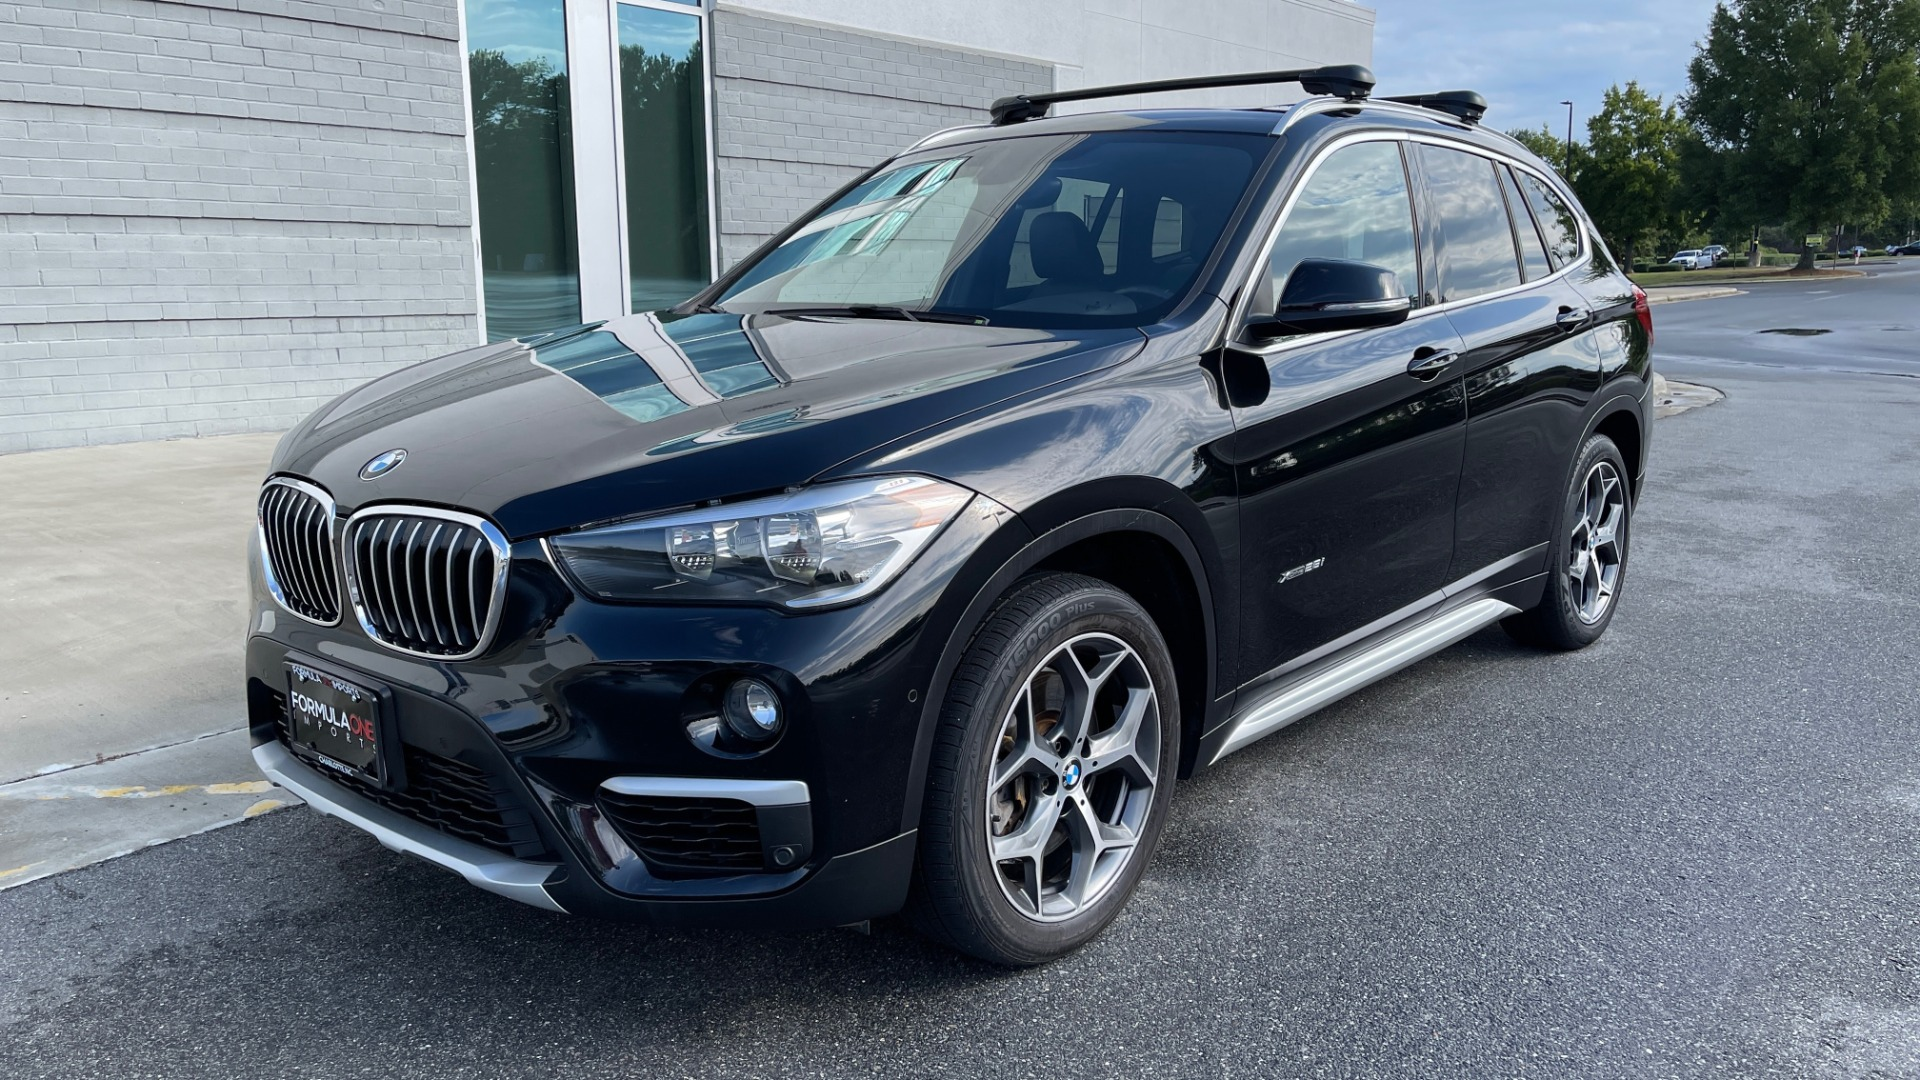 Used 2017 BMW X1 XDRIVE28I / DRVR ASST PKG / COLD WTHR / HTD FRT STS / PANO-ROOF / REARVIEW for sale $25,795 at Formula Imports in Charlotte NC 28227 3